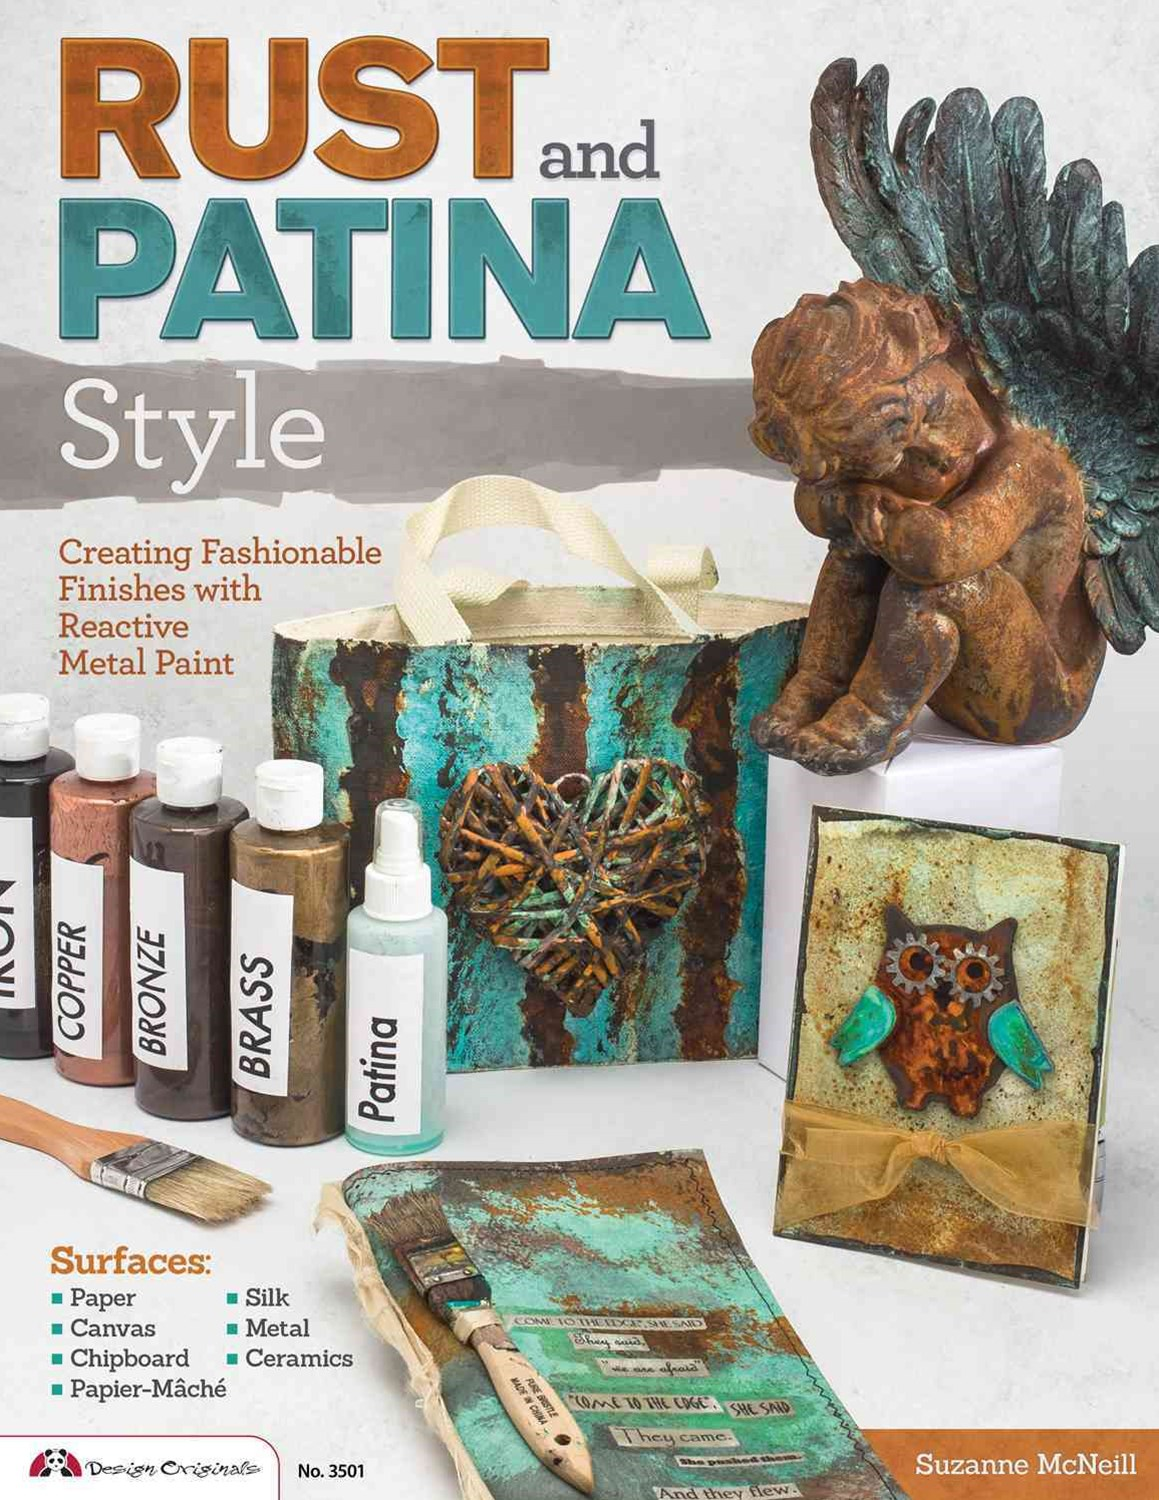 Rust and Patina Style